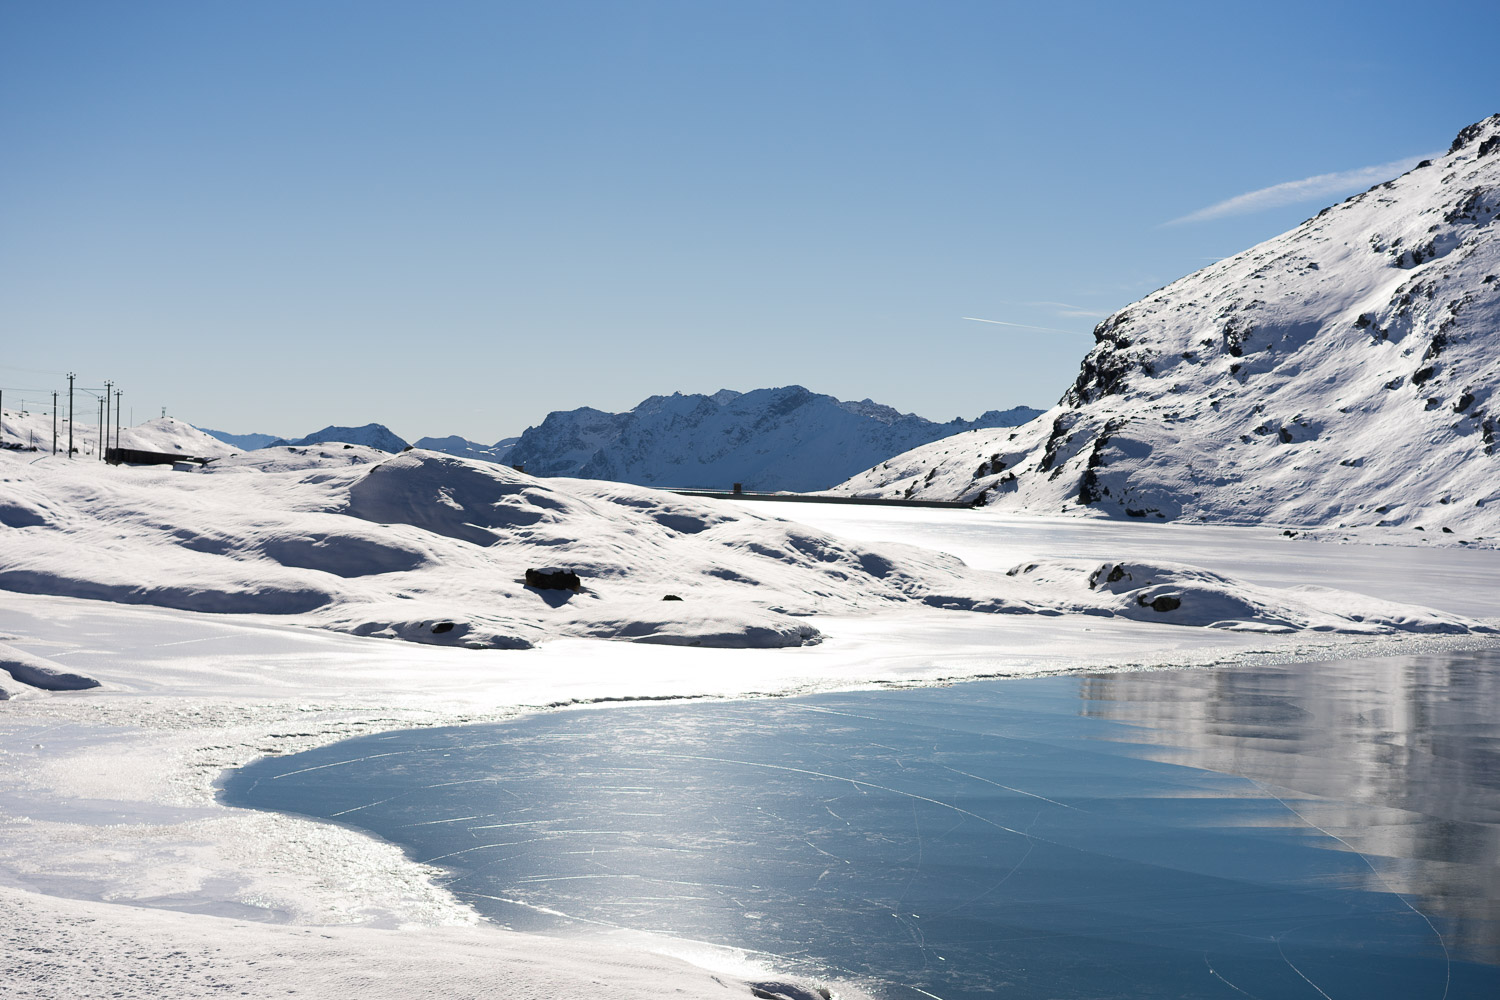 Frozen lake up in the mountains